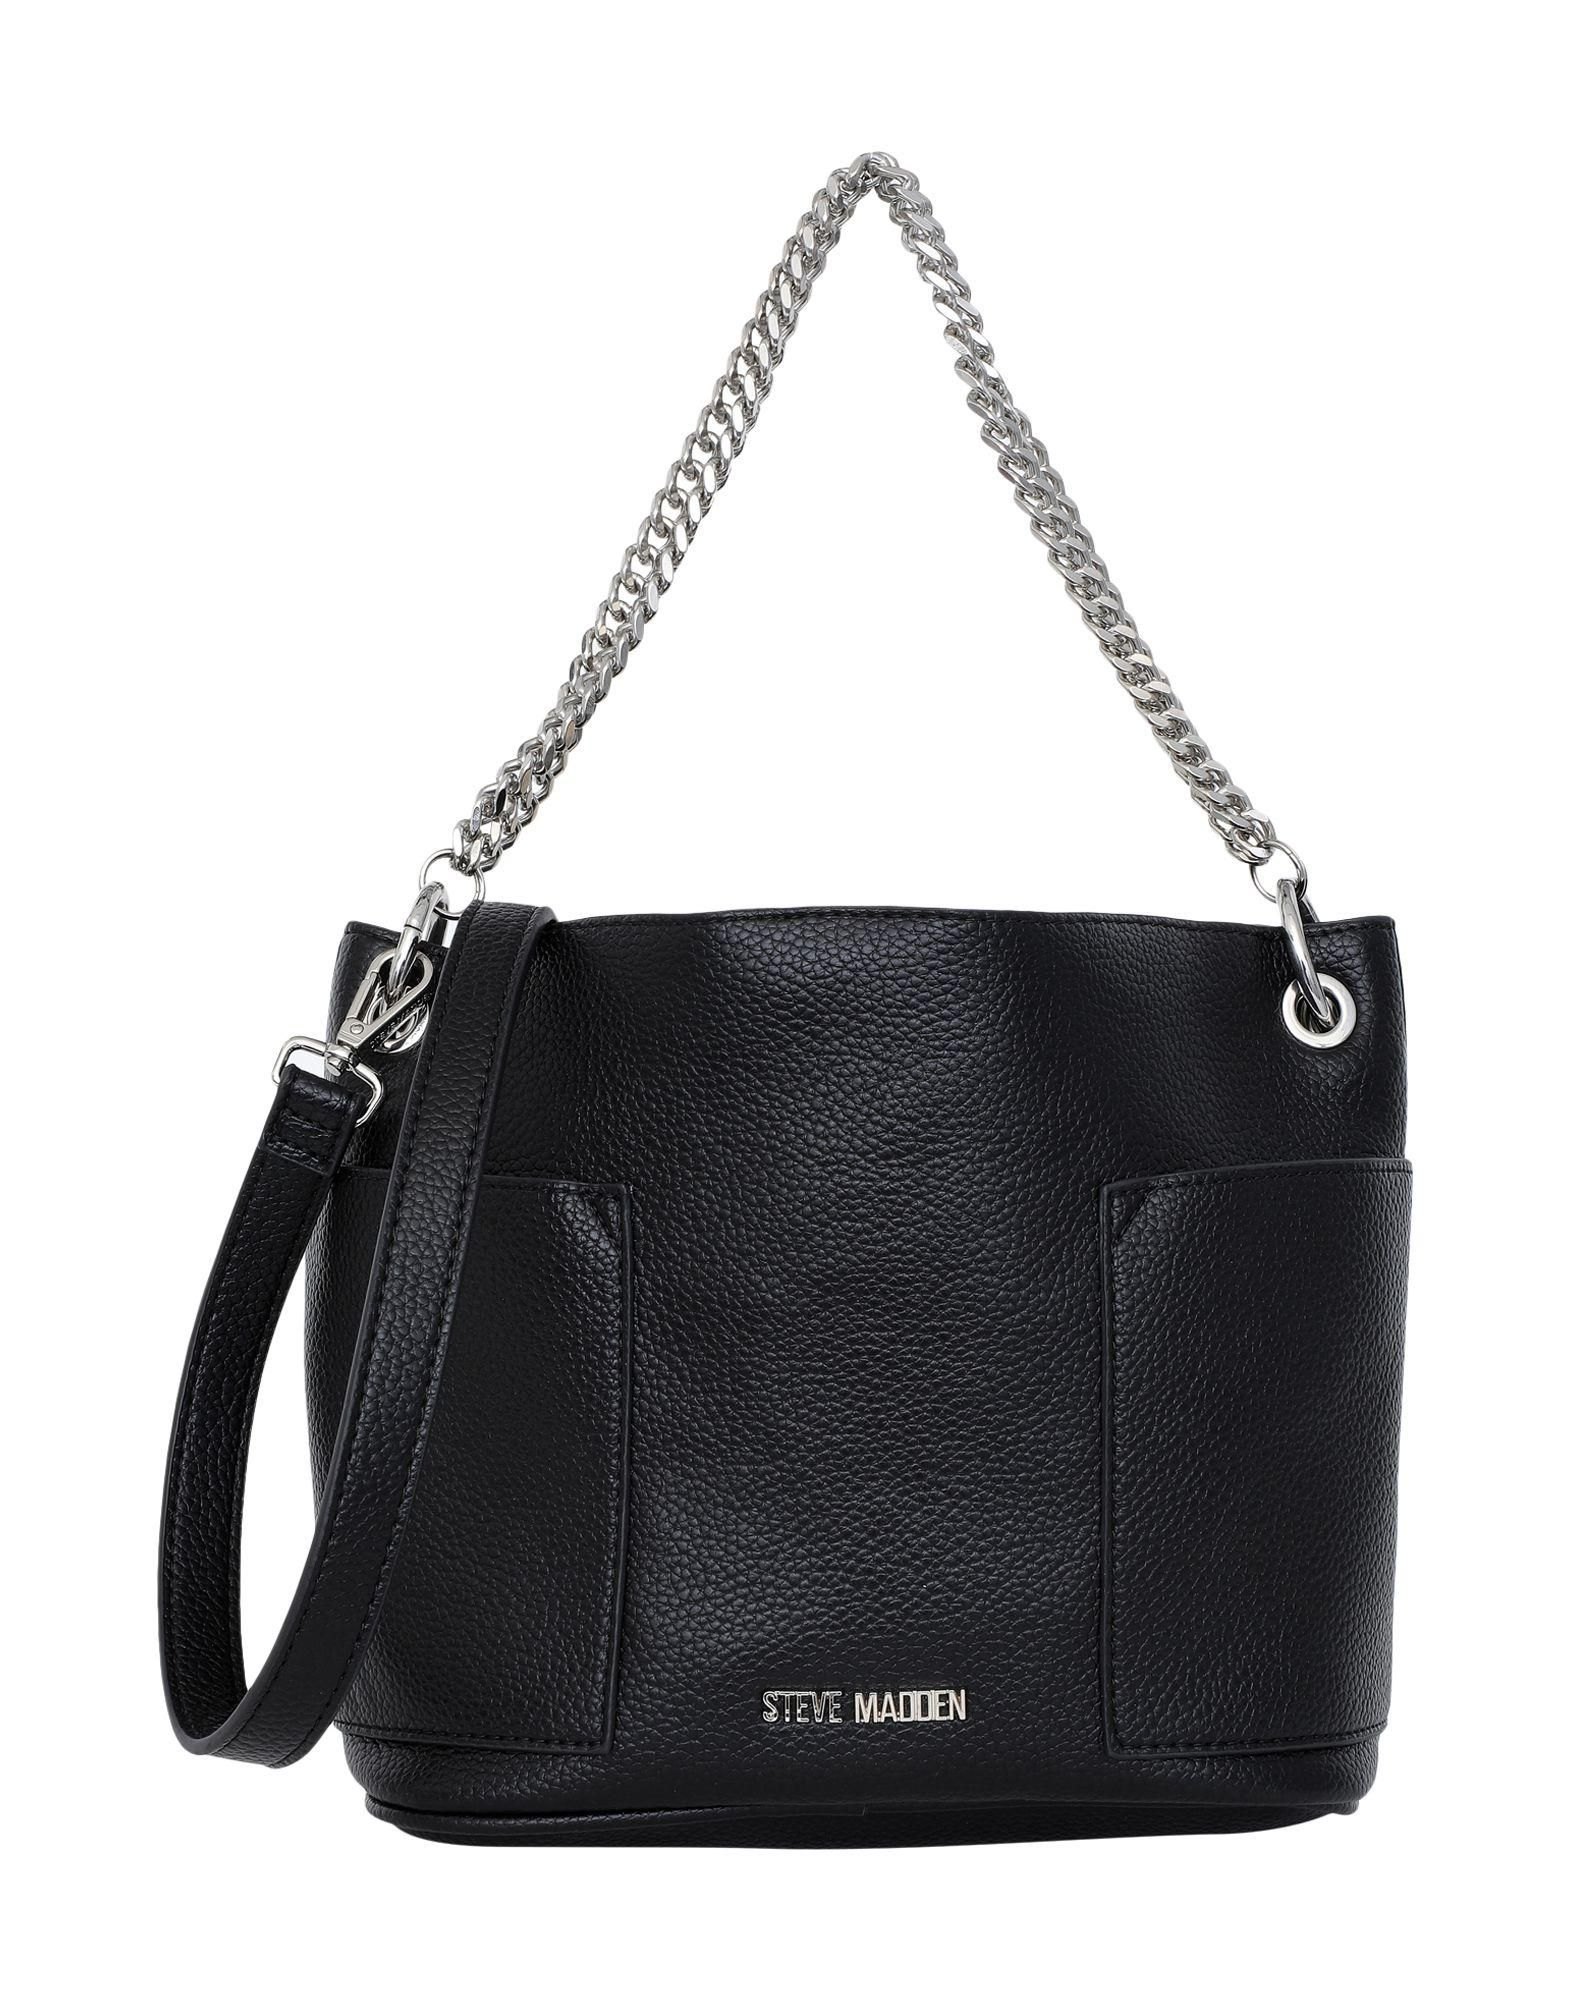 steve madden black bag